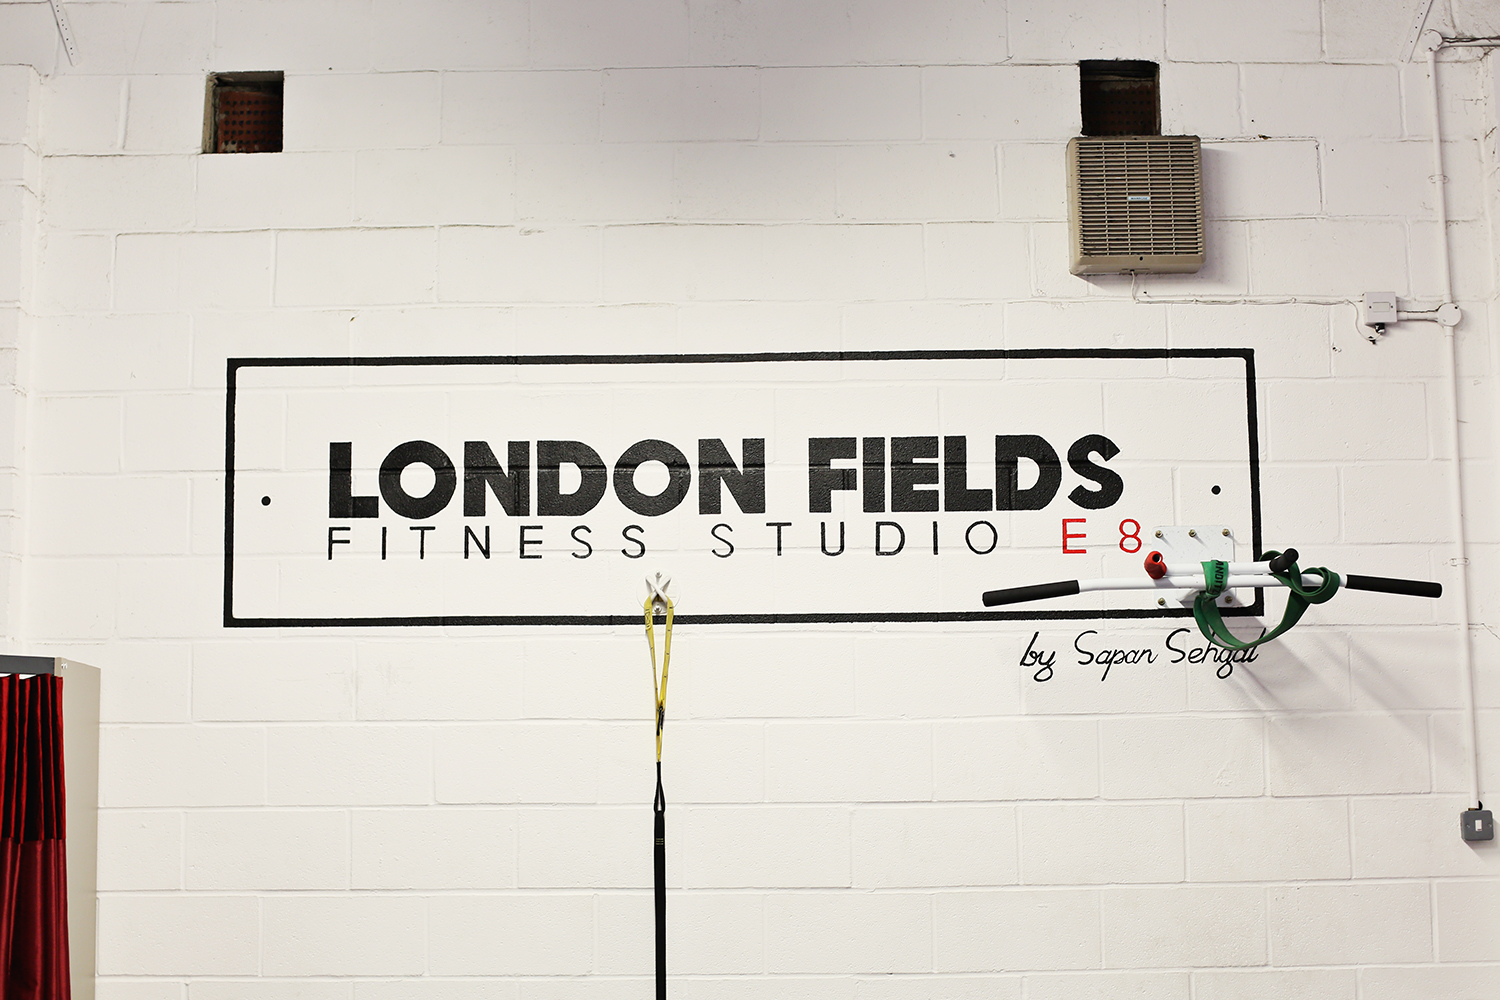 London Fields Fitness Studio